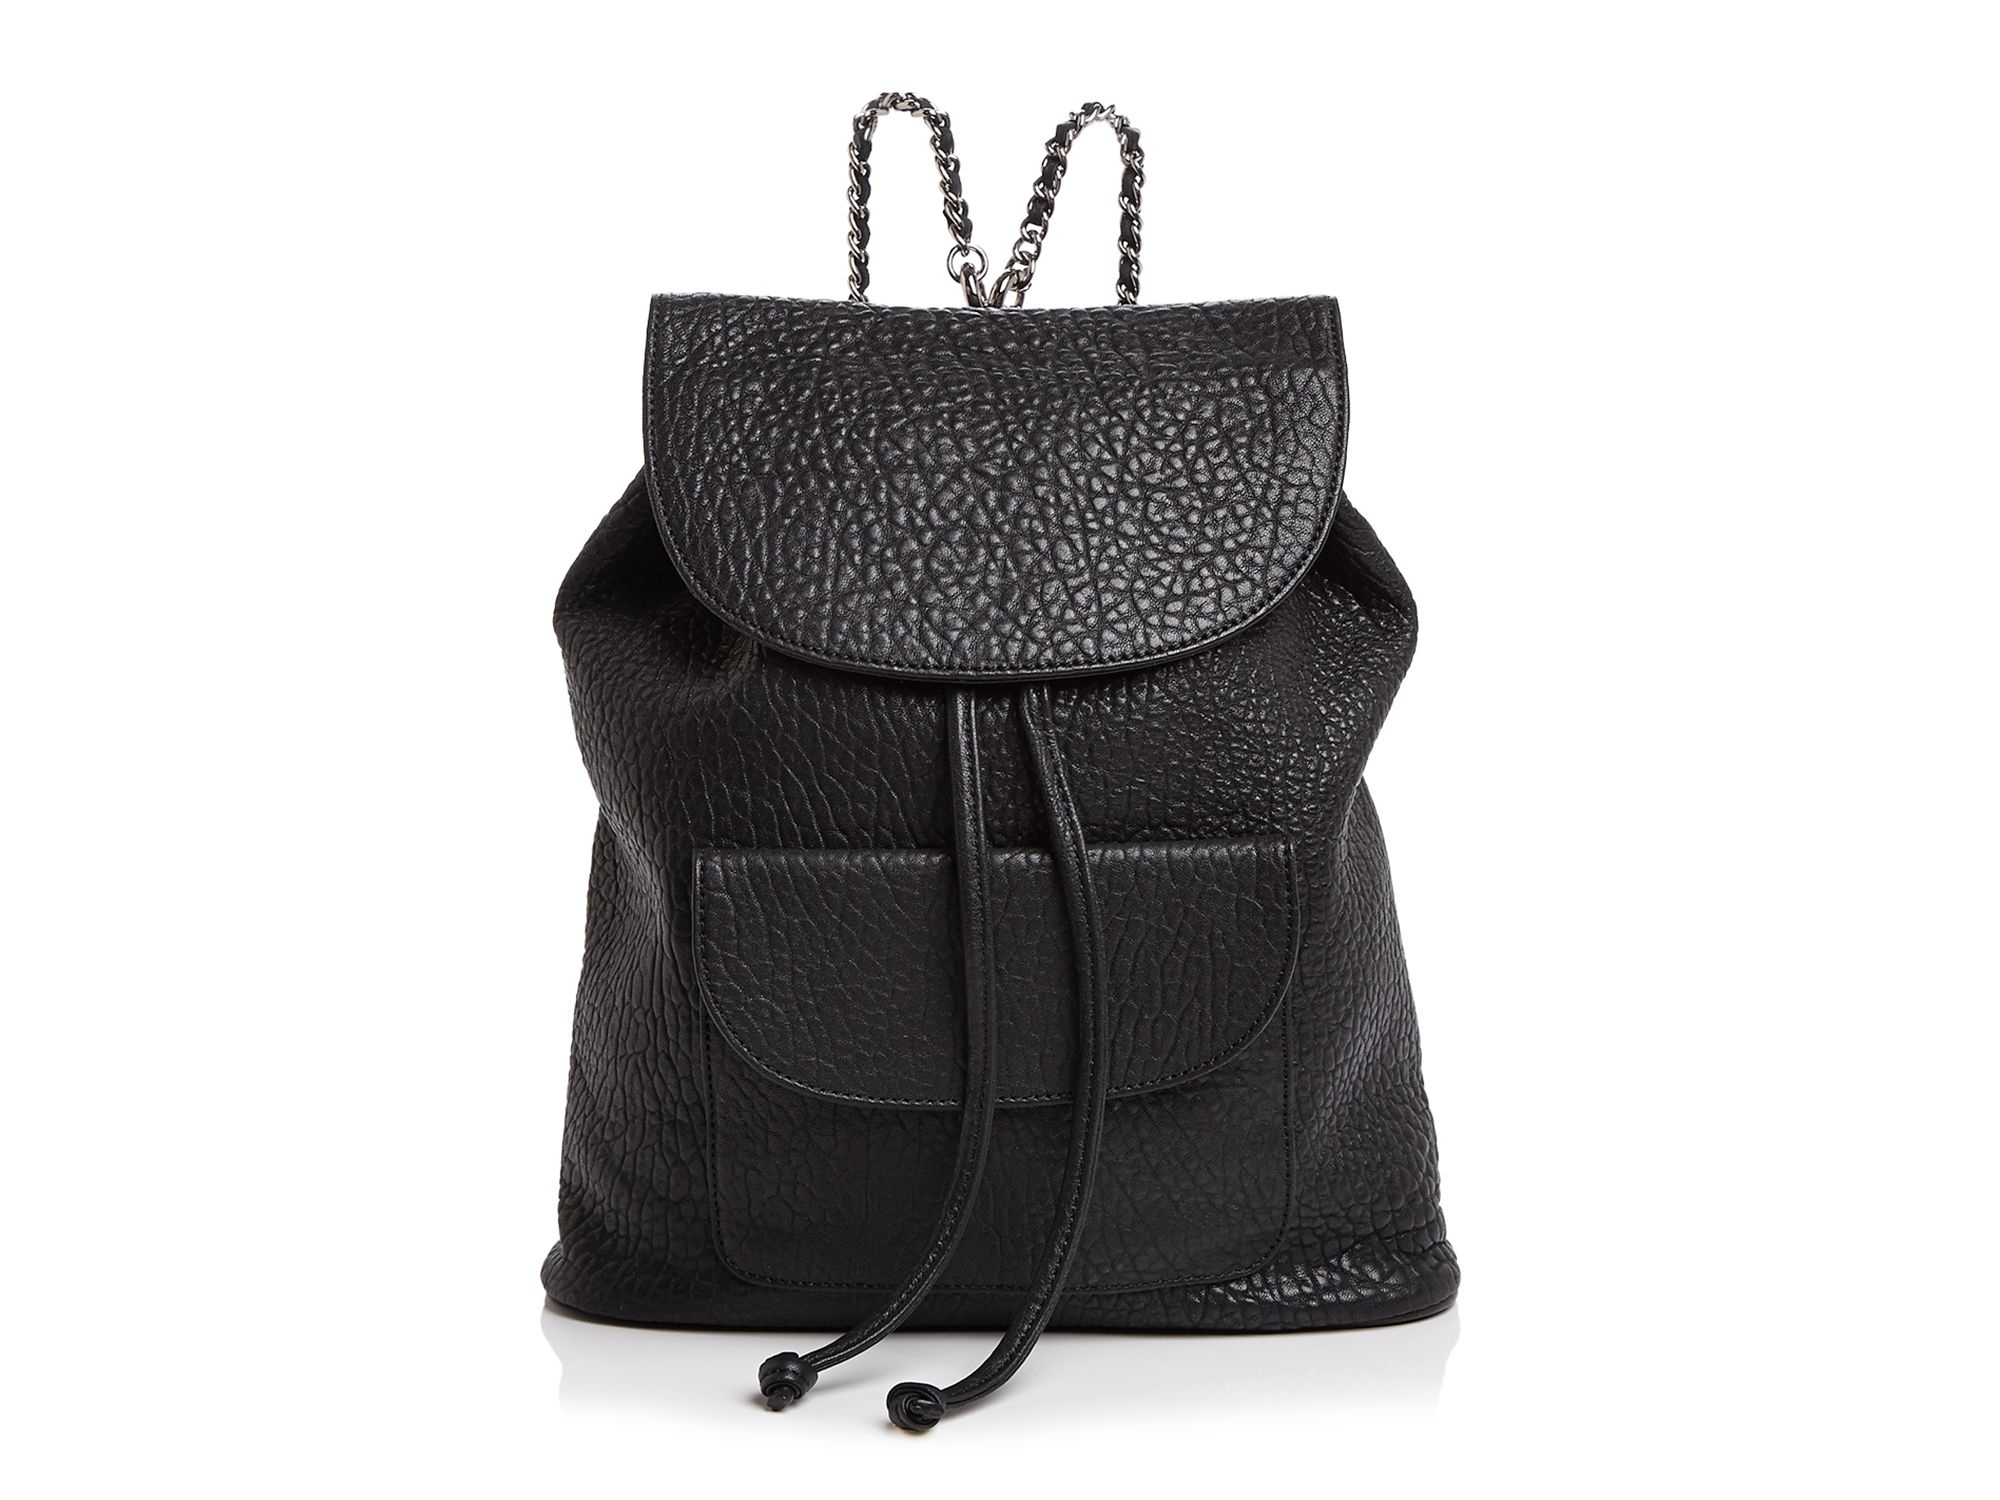 SJP by Sarah Jessica Parker Clinton Backpack in Black - Lyst